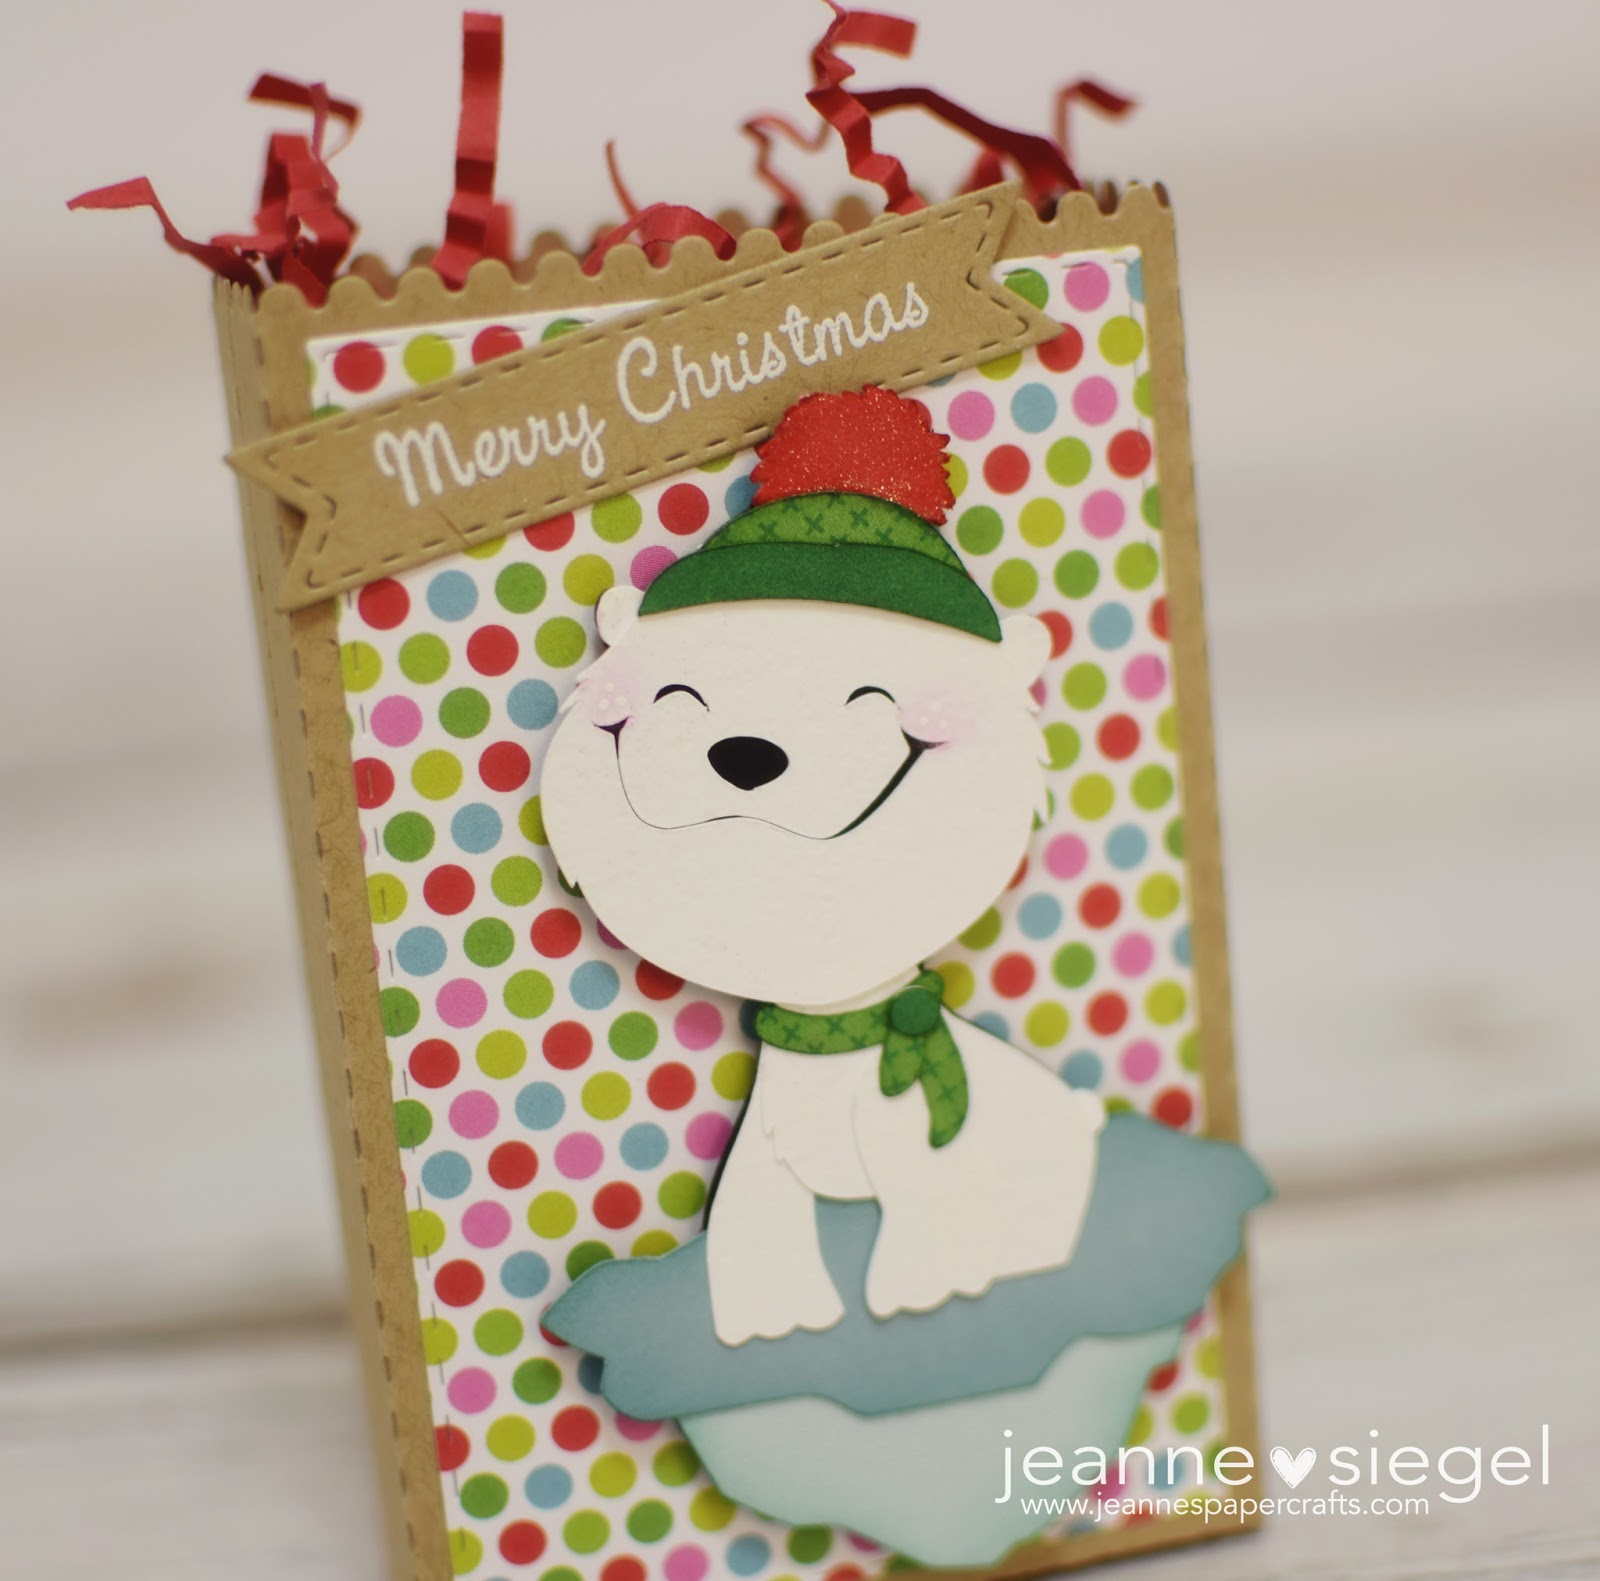 Jeanne's Paper Crafts